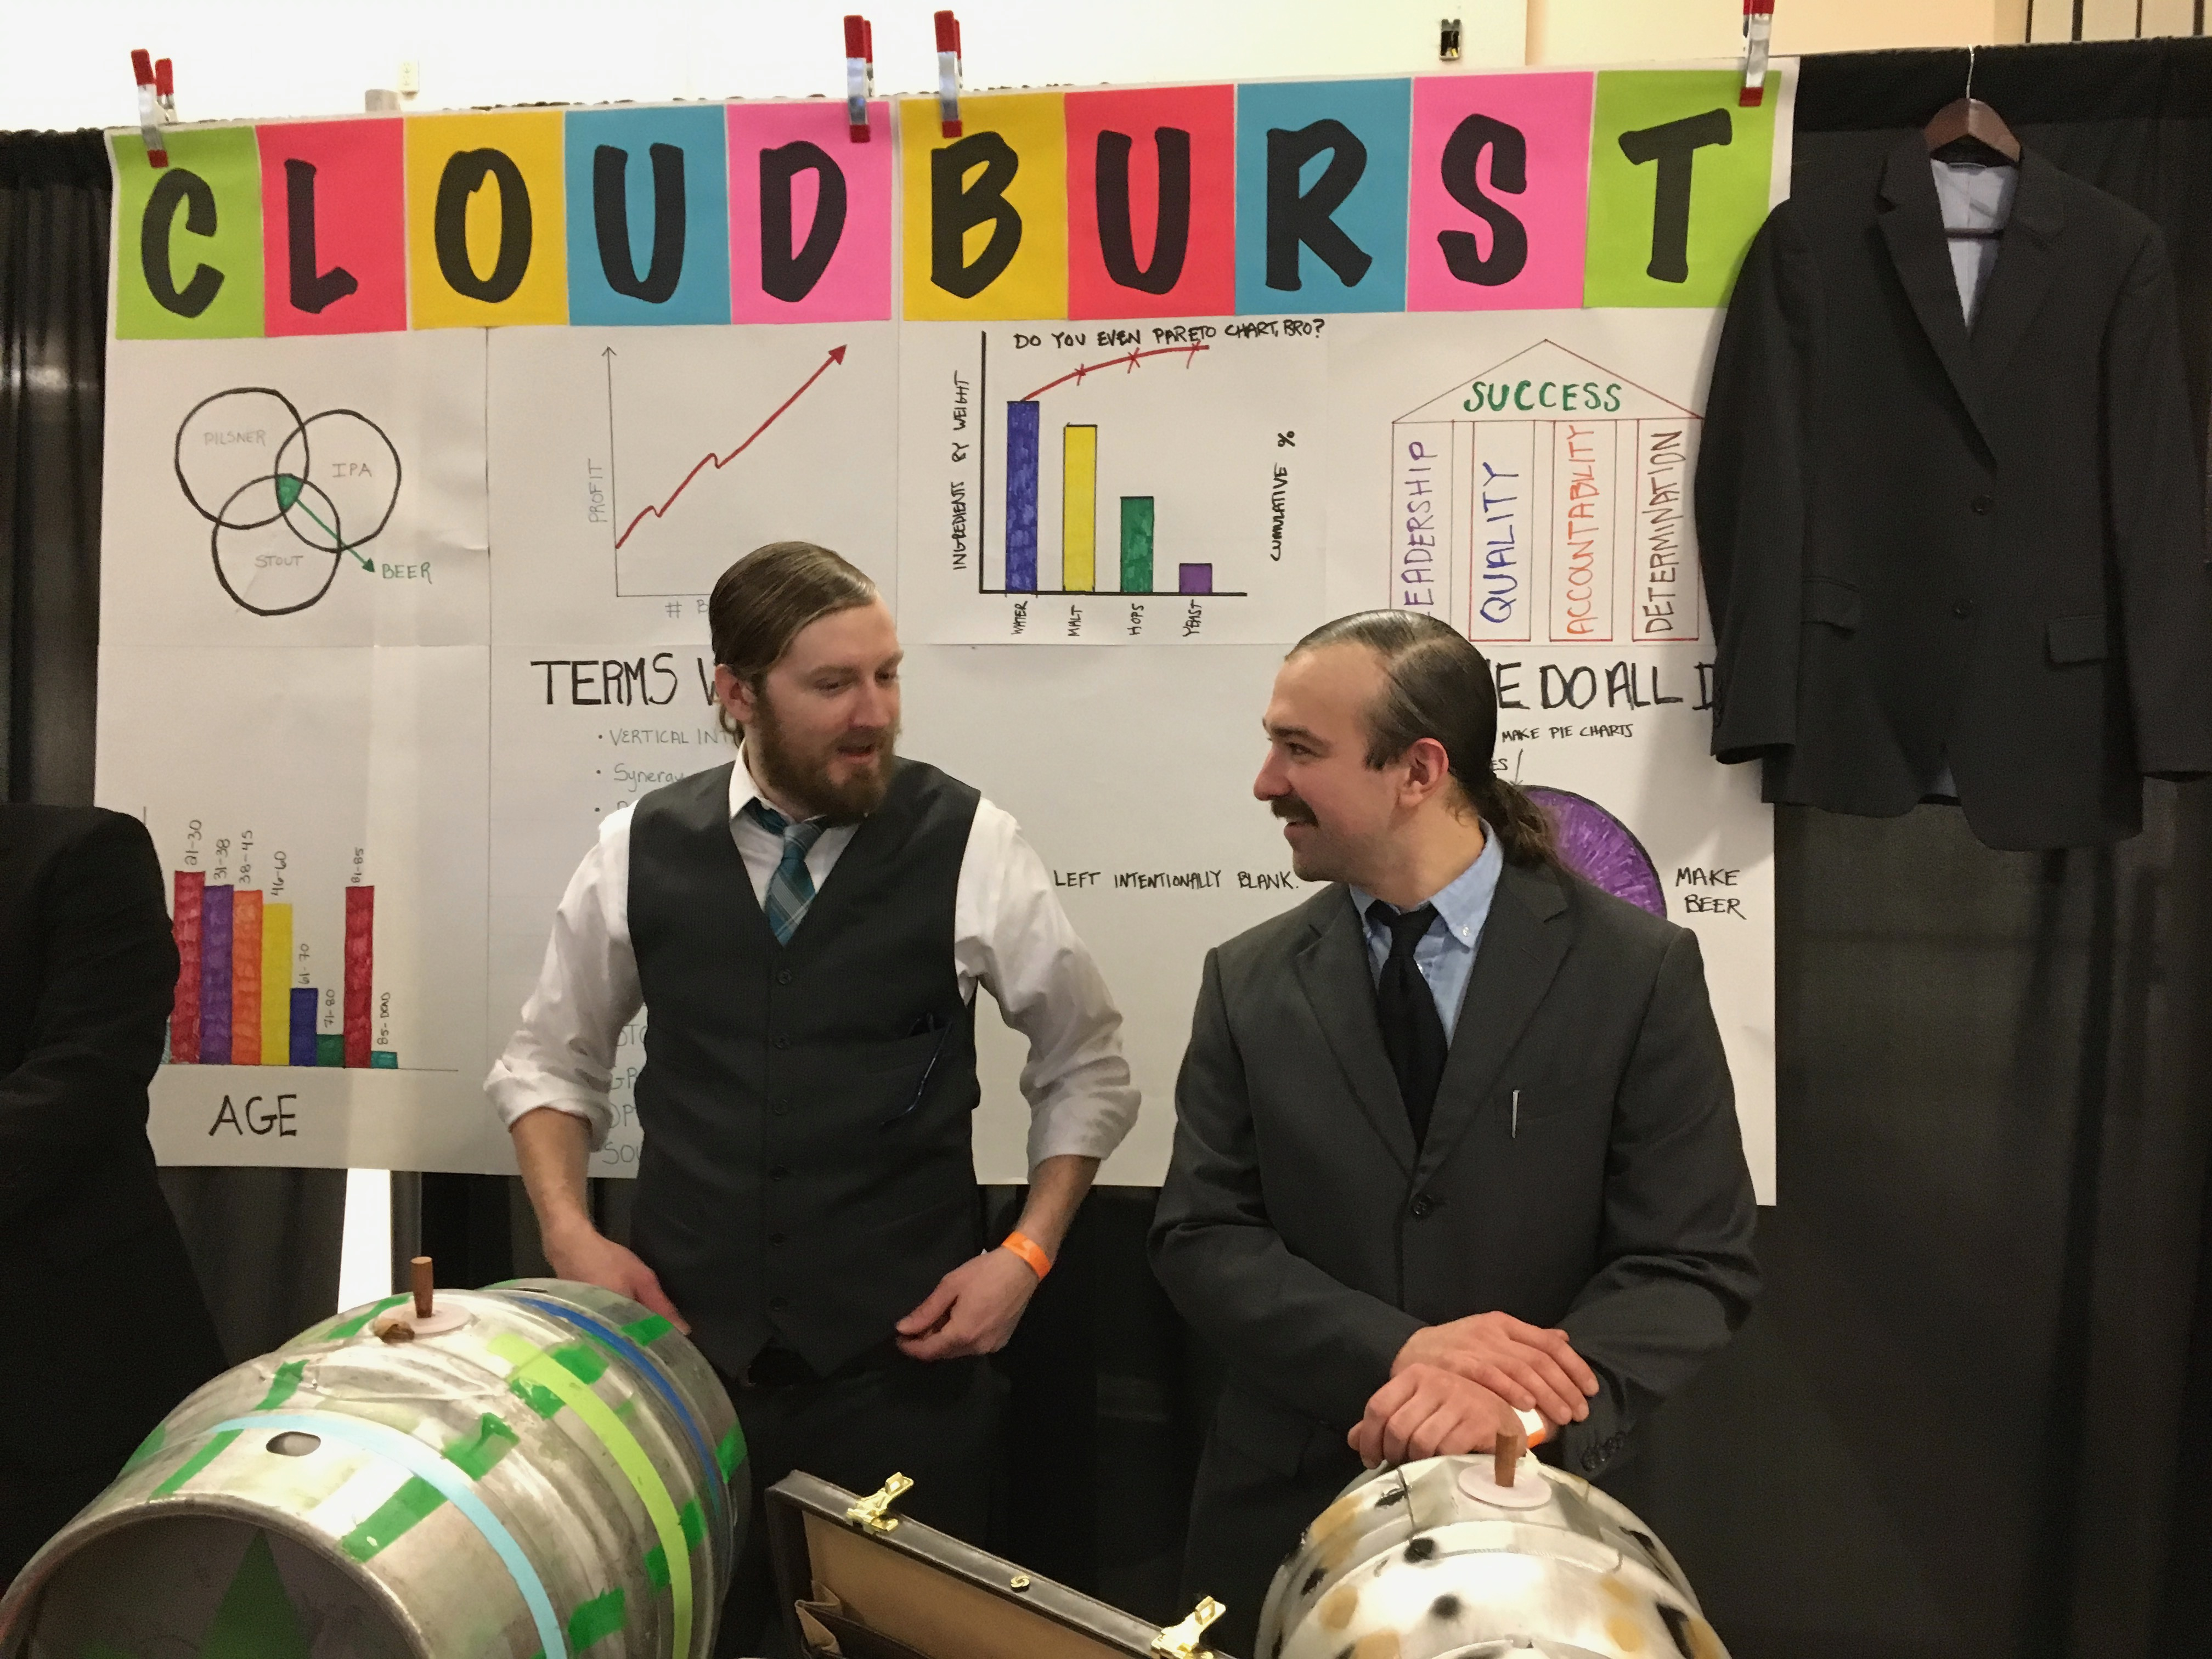 Cloudburst Brewing at the 2017 Washington Cask Beer Fest.